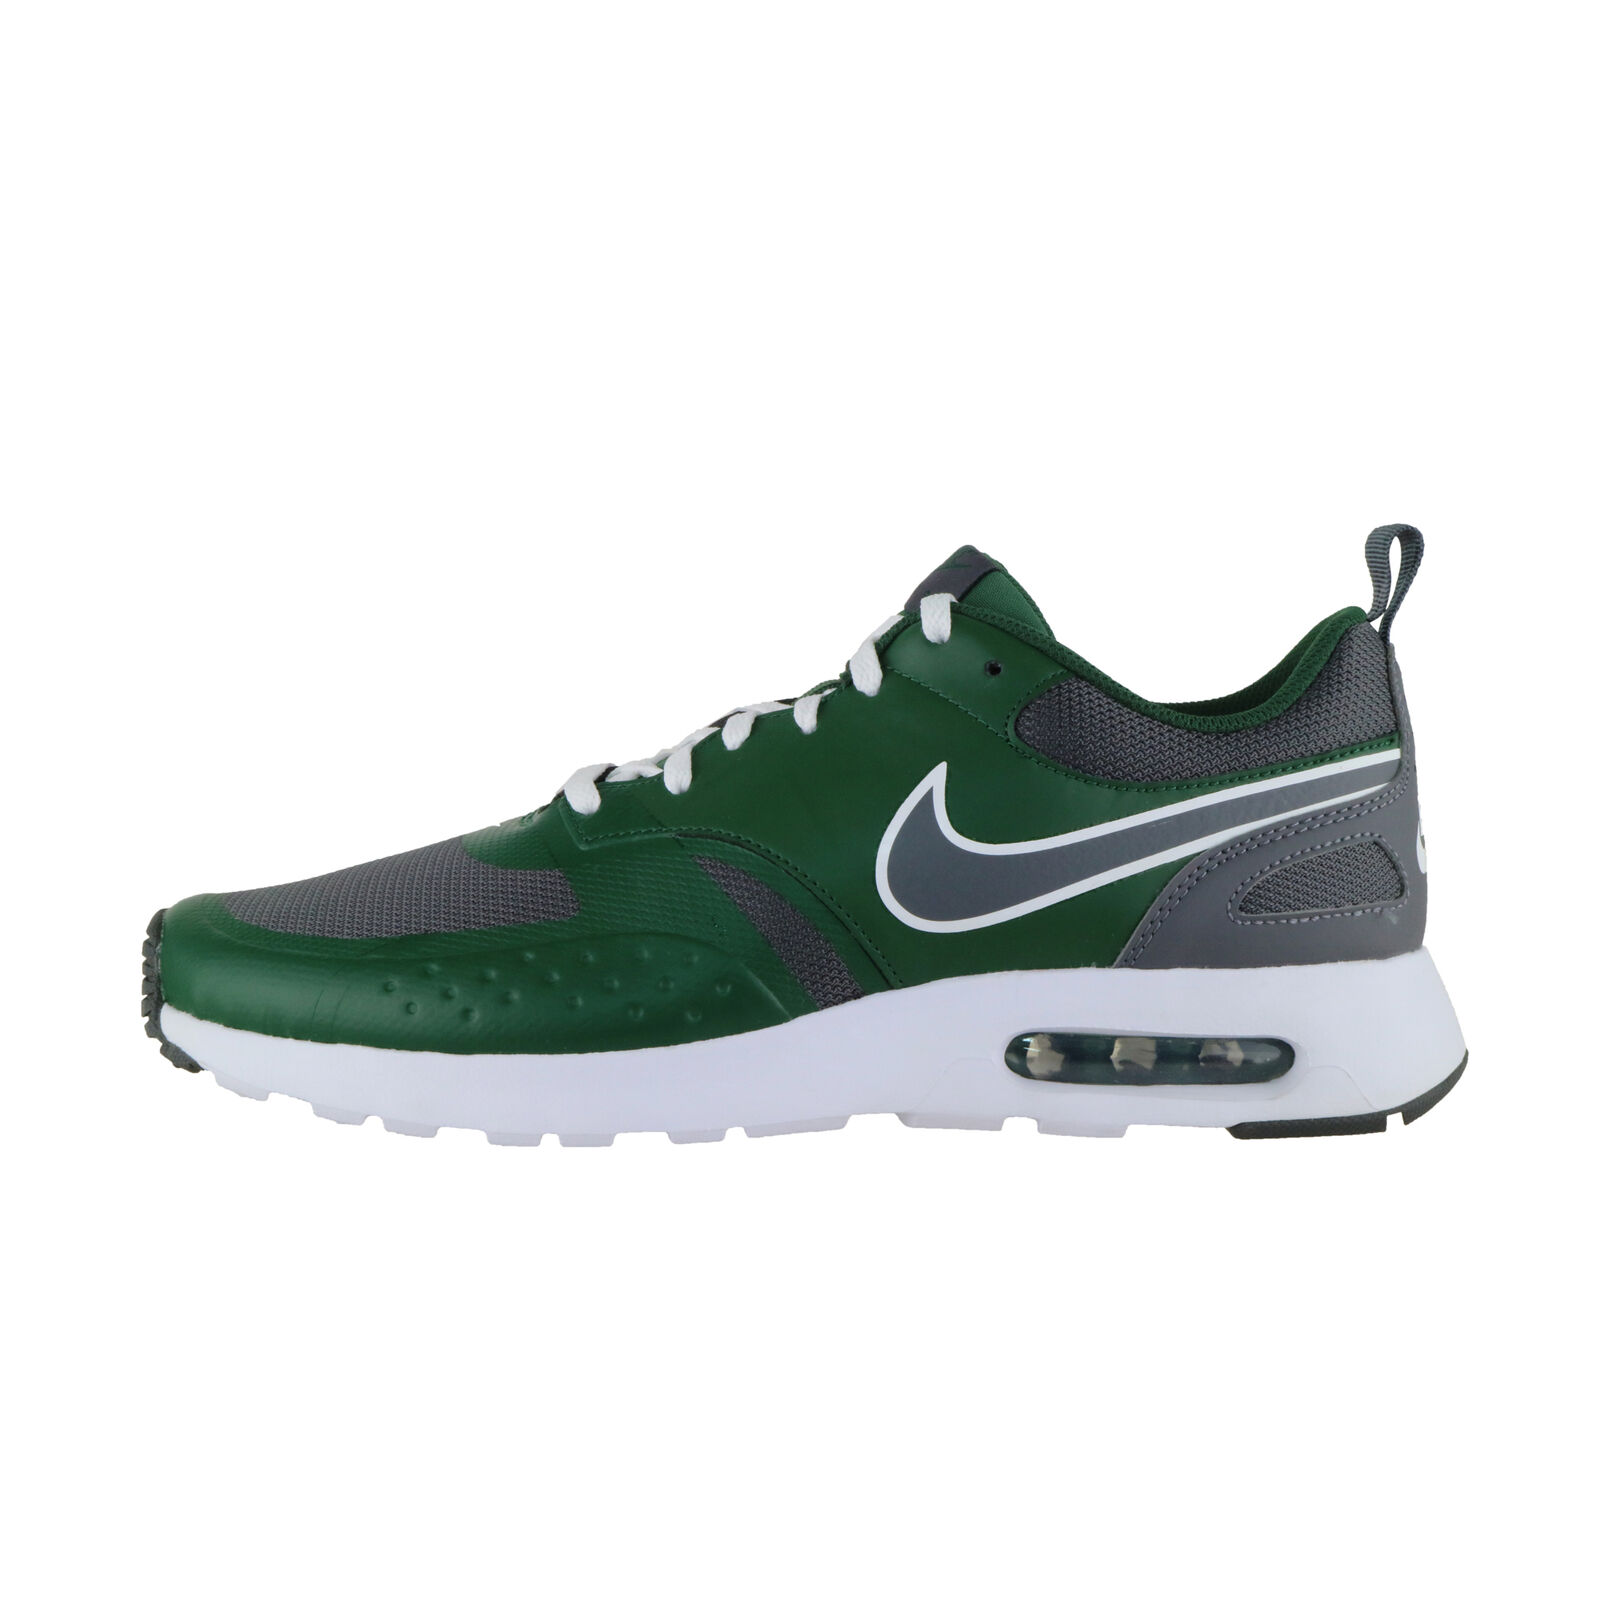 Details about Nike Air Max Vision GreenGrey 918230 300